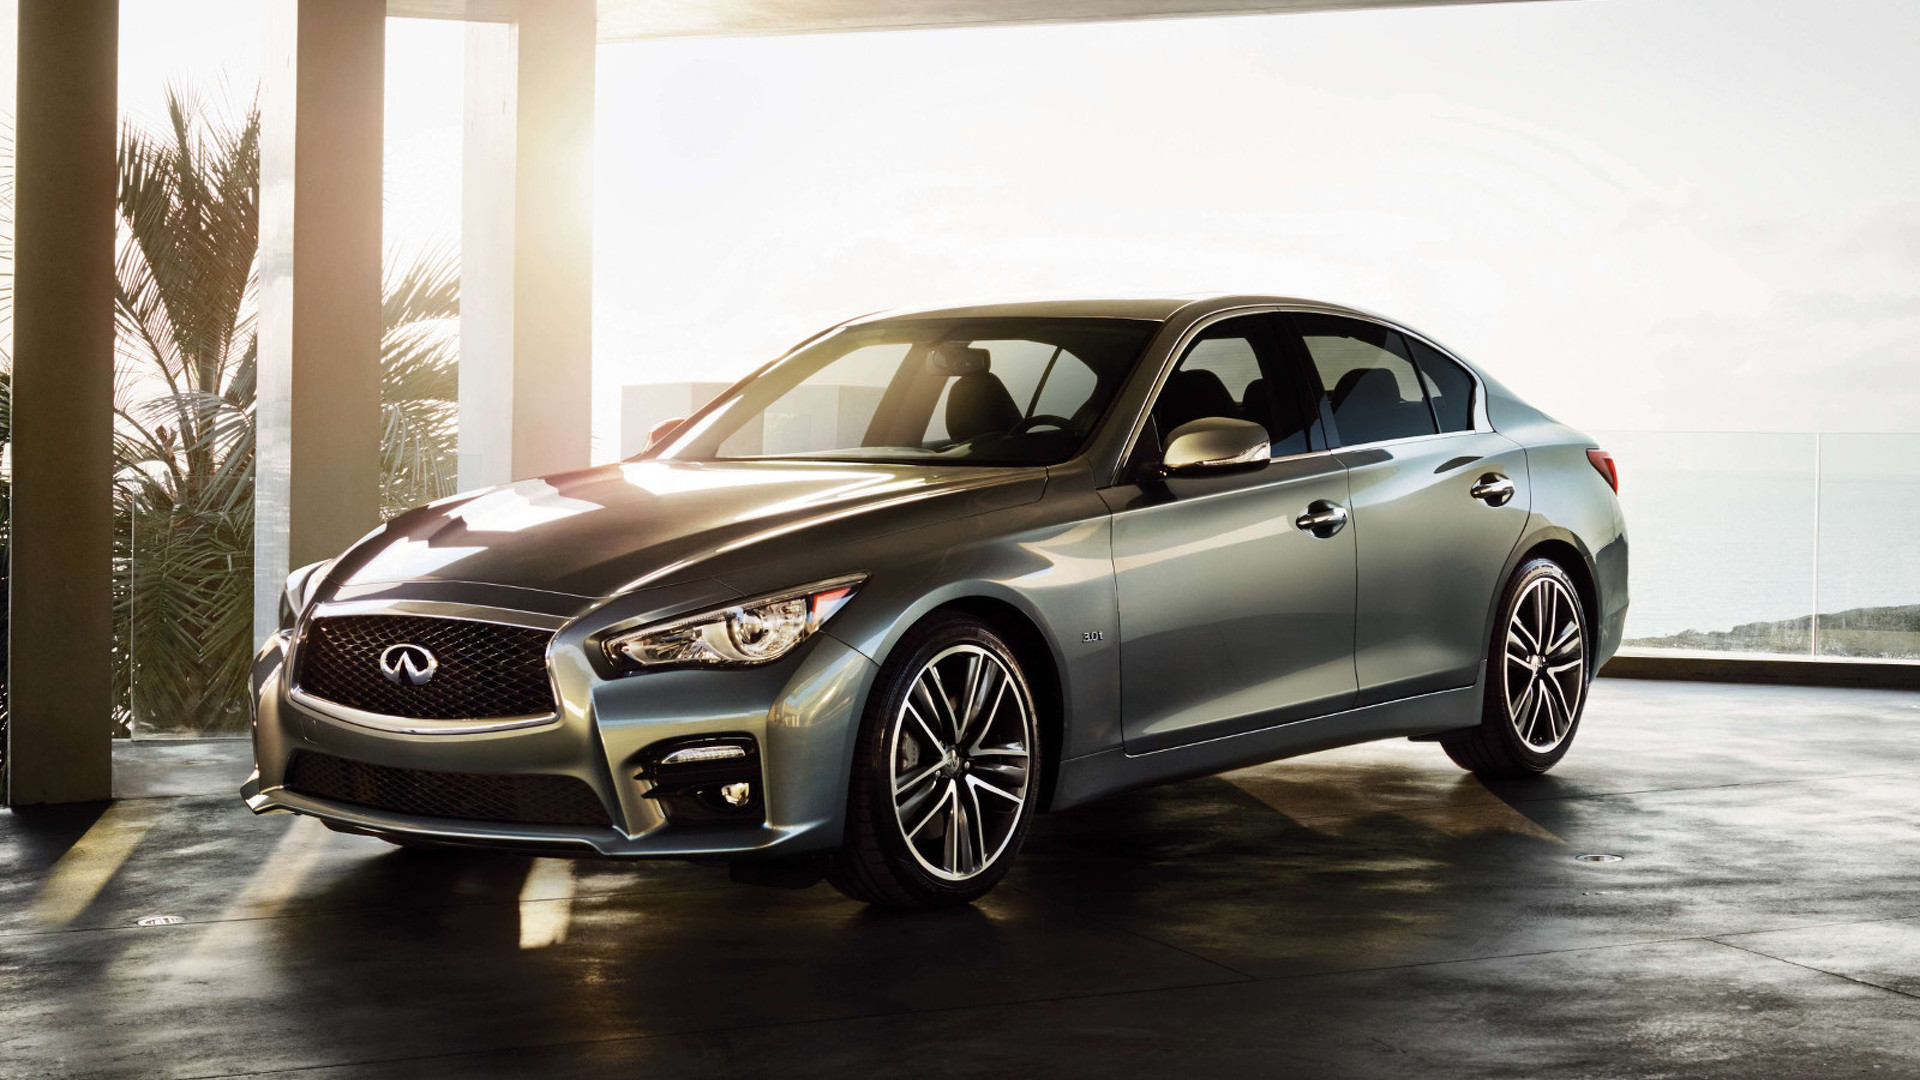 2016 Infiniti Q50 priced from $33,950